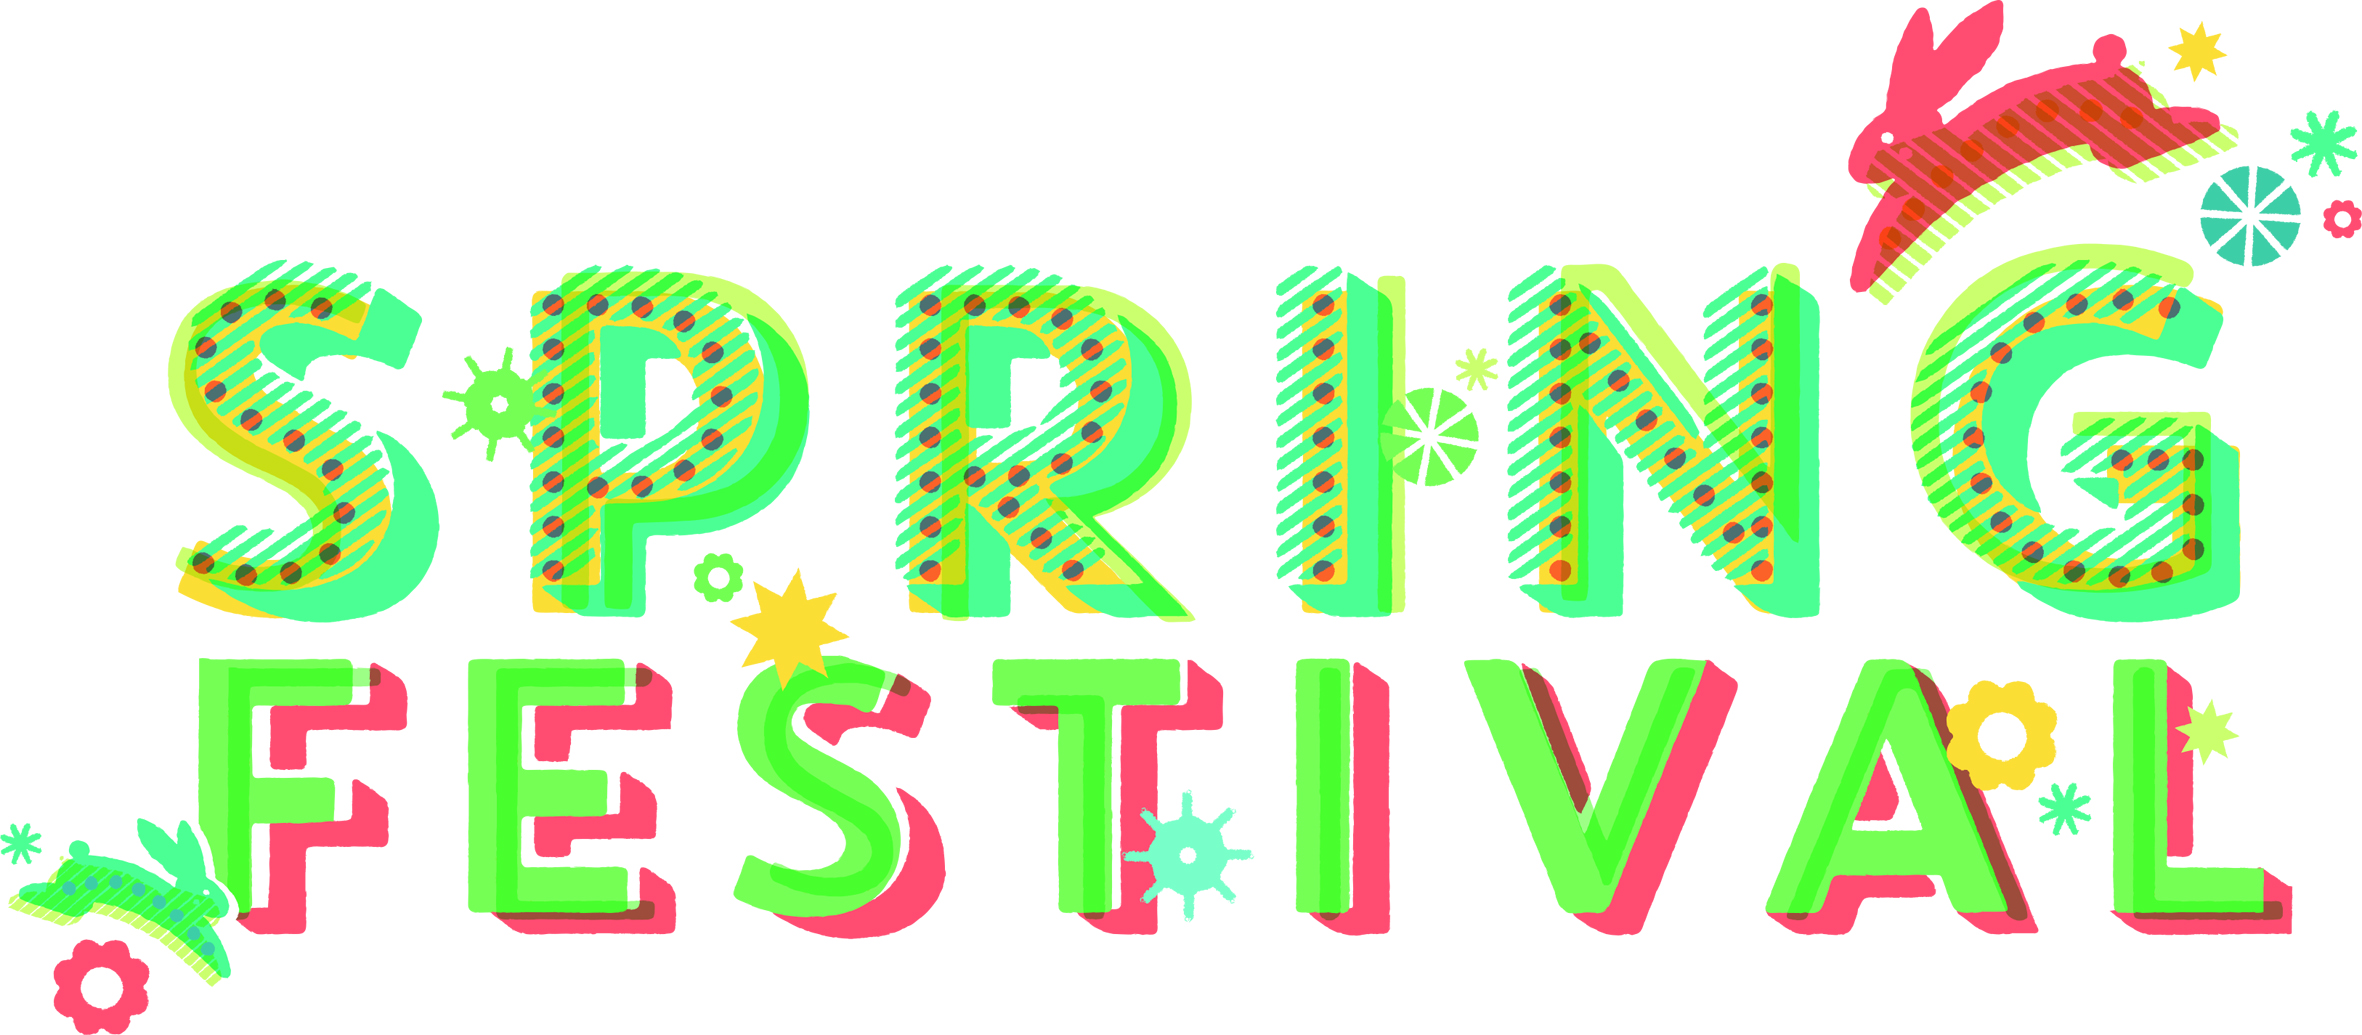 Spring festival pictures images clipart